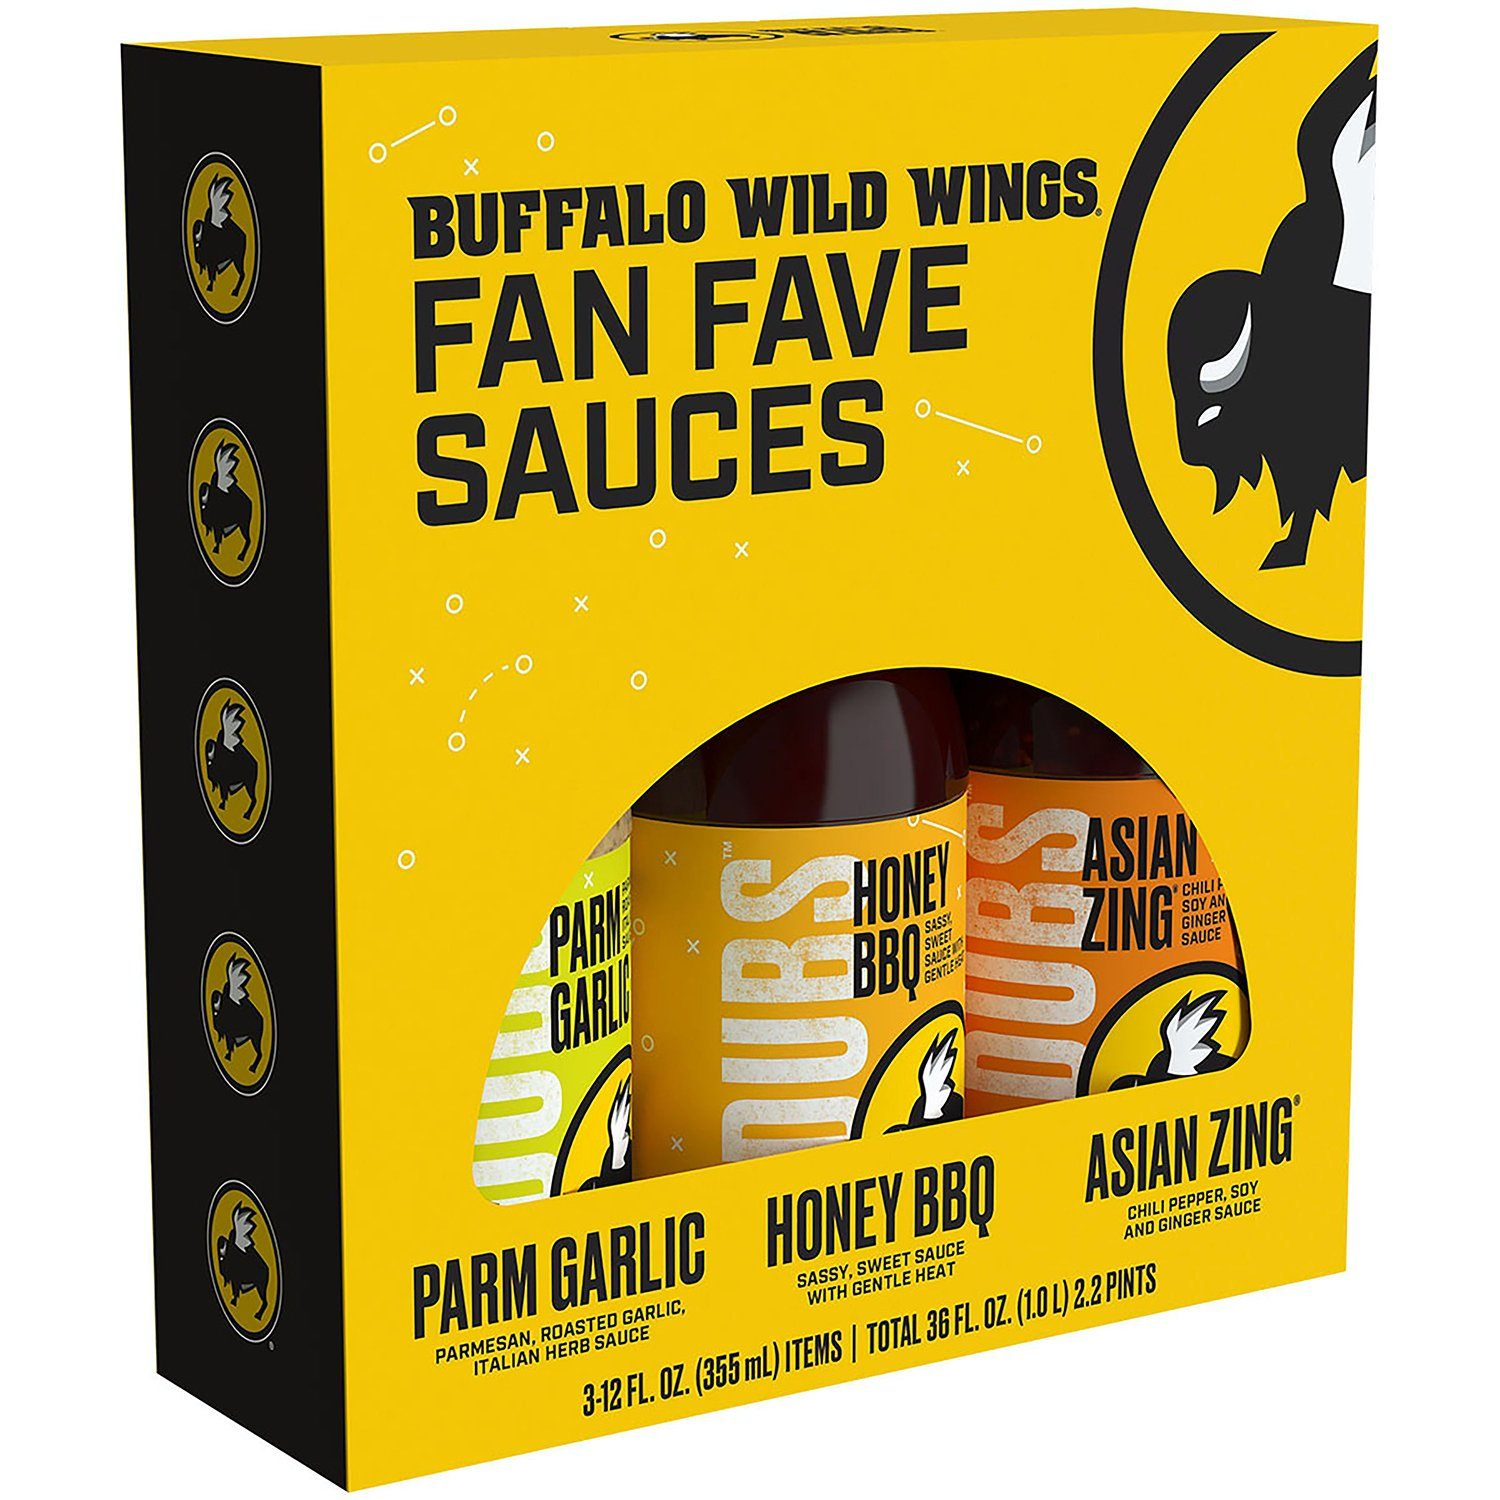 Buffalo Wild Wings Sauces Buffalo Wild Wings Variety 3 Flavors 12 Fl Oz-3 Count